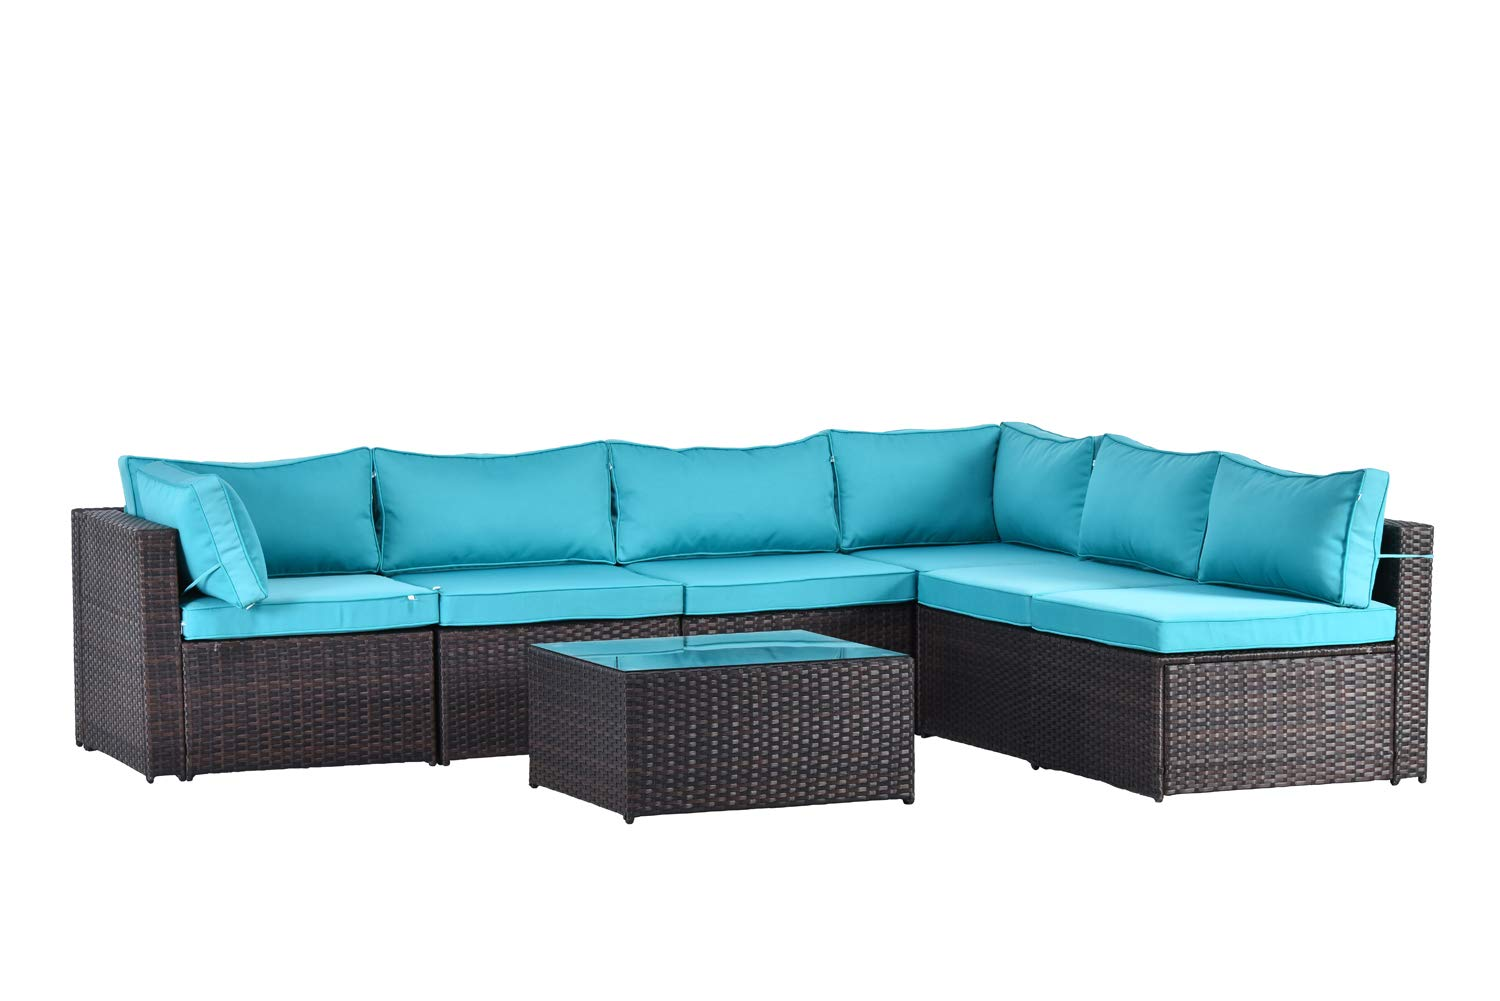 Gotland 7pcs Outdoor Sectional Sofa Patio Furniture Cushion Cover Set,Only Covers(Blue) -Incl.6 Seat Cushion Covers & 8 Back Pillow Covers